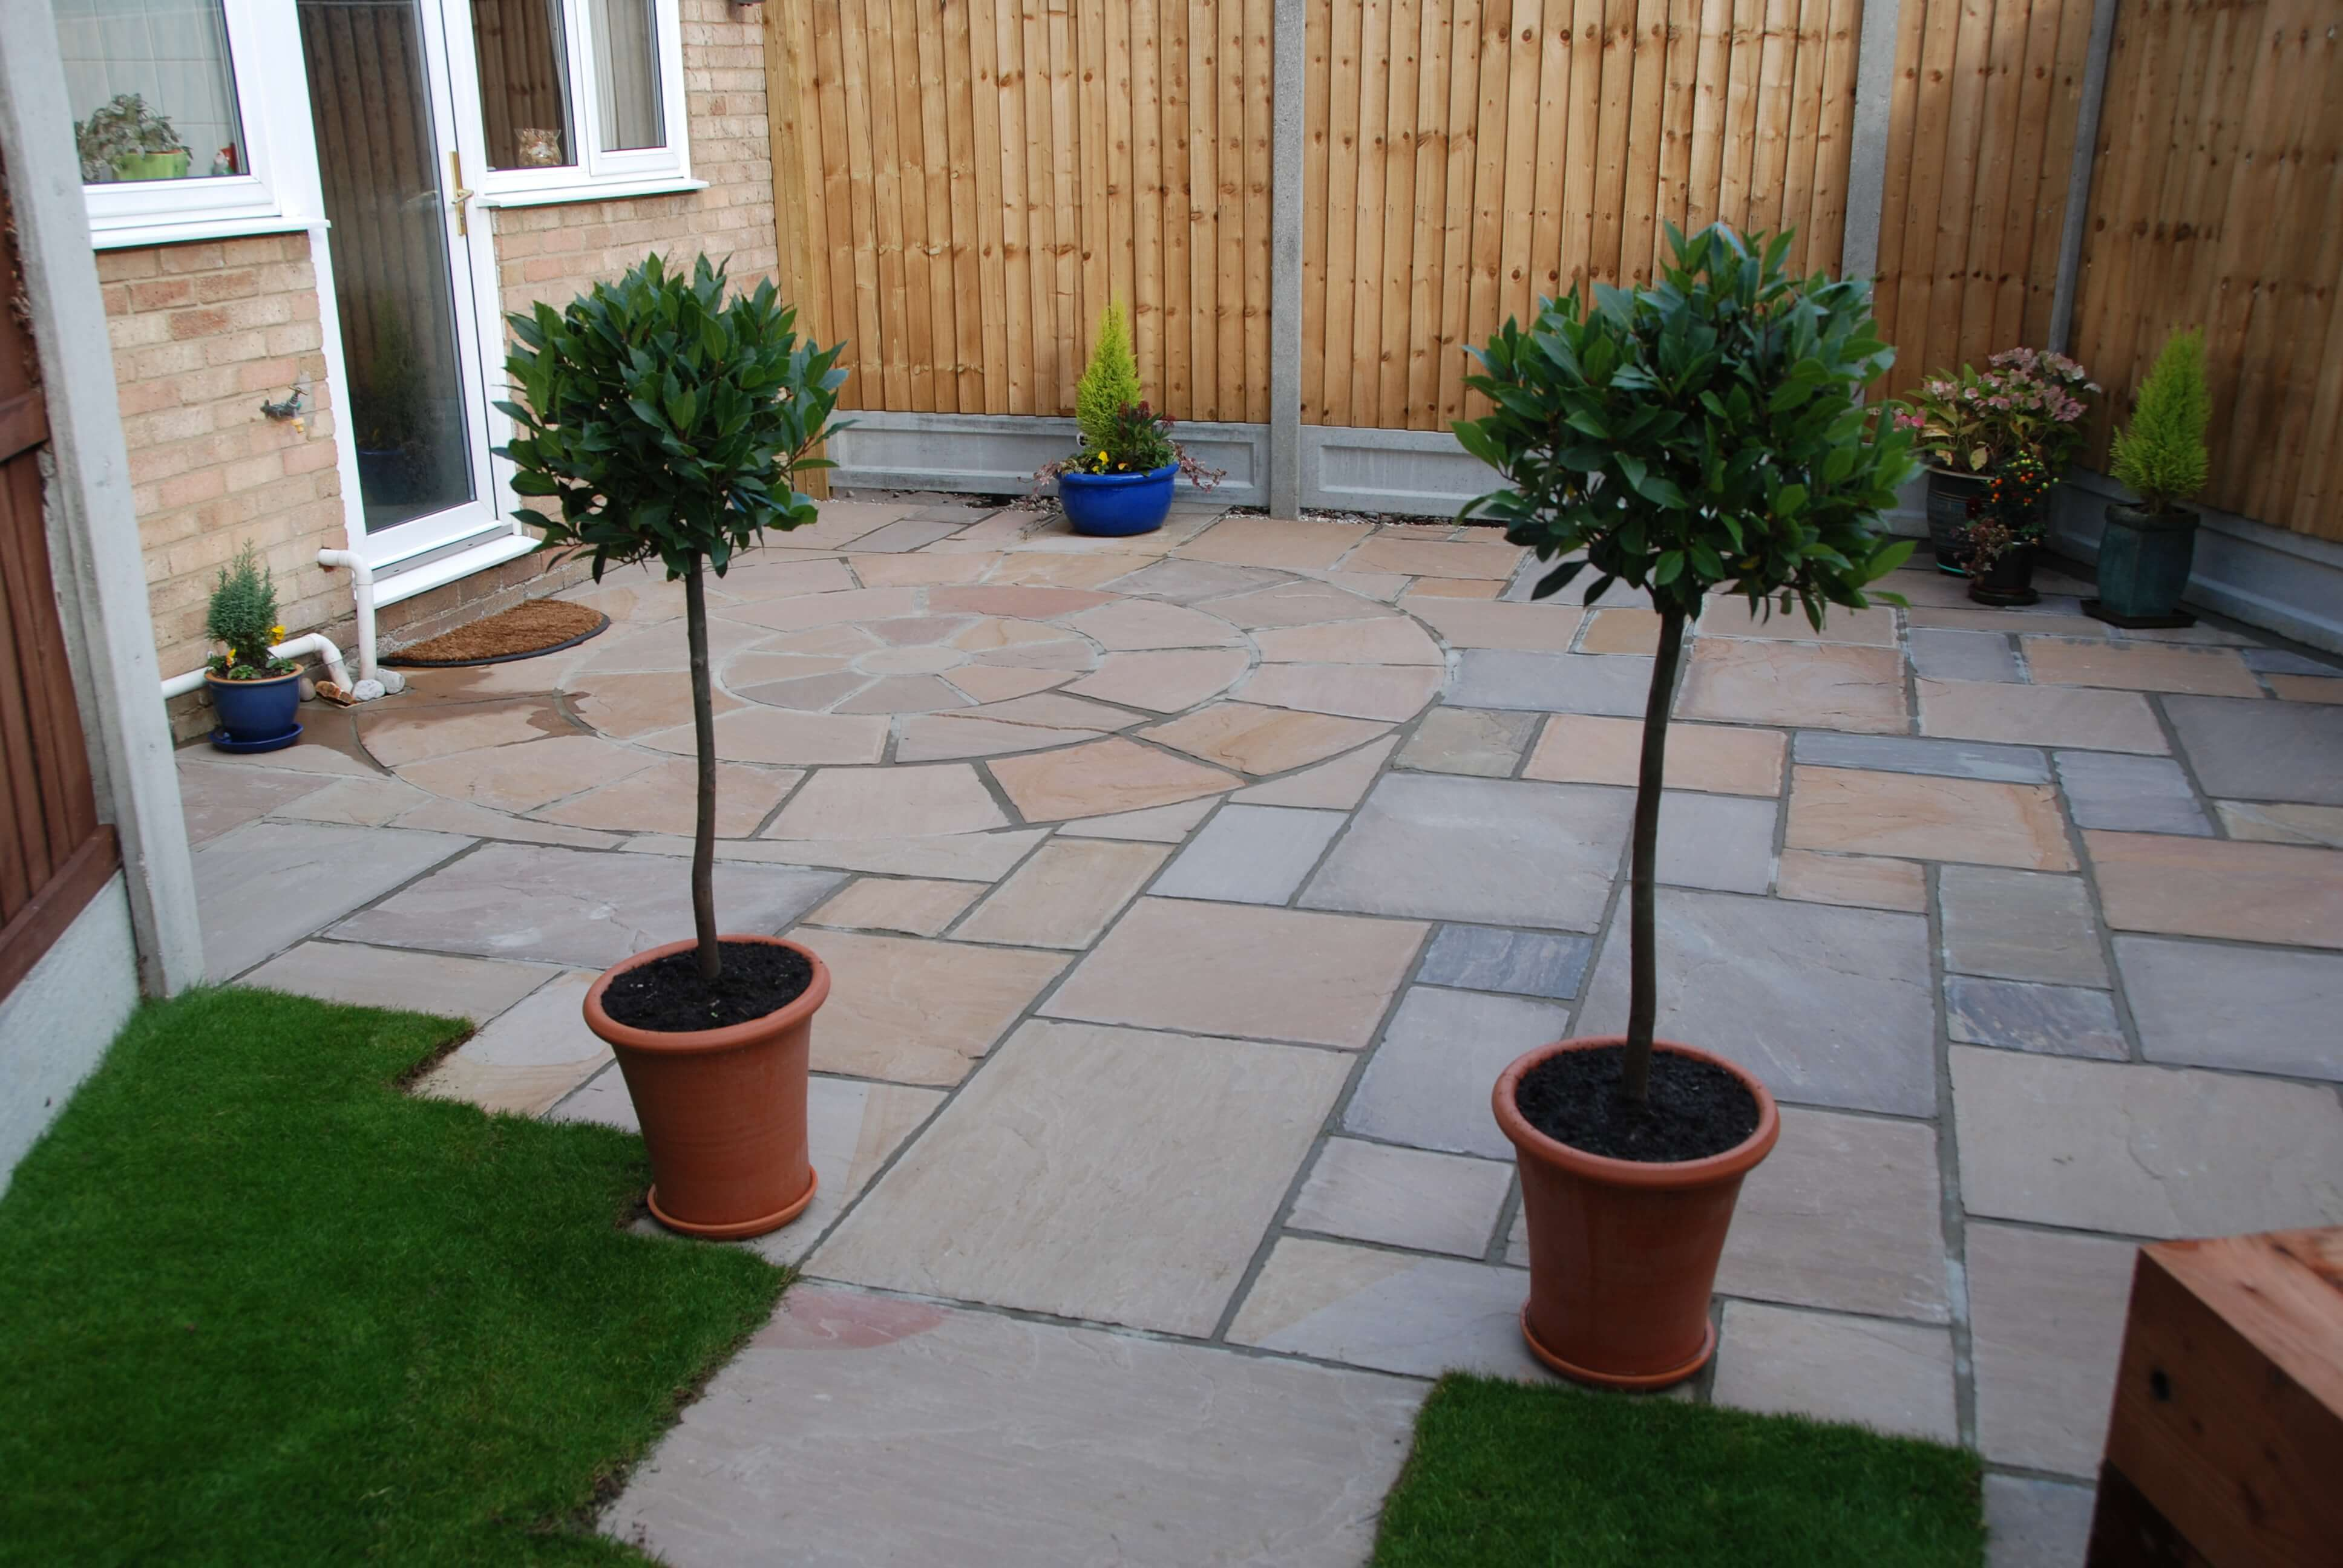 Landscaping-20-1